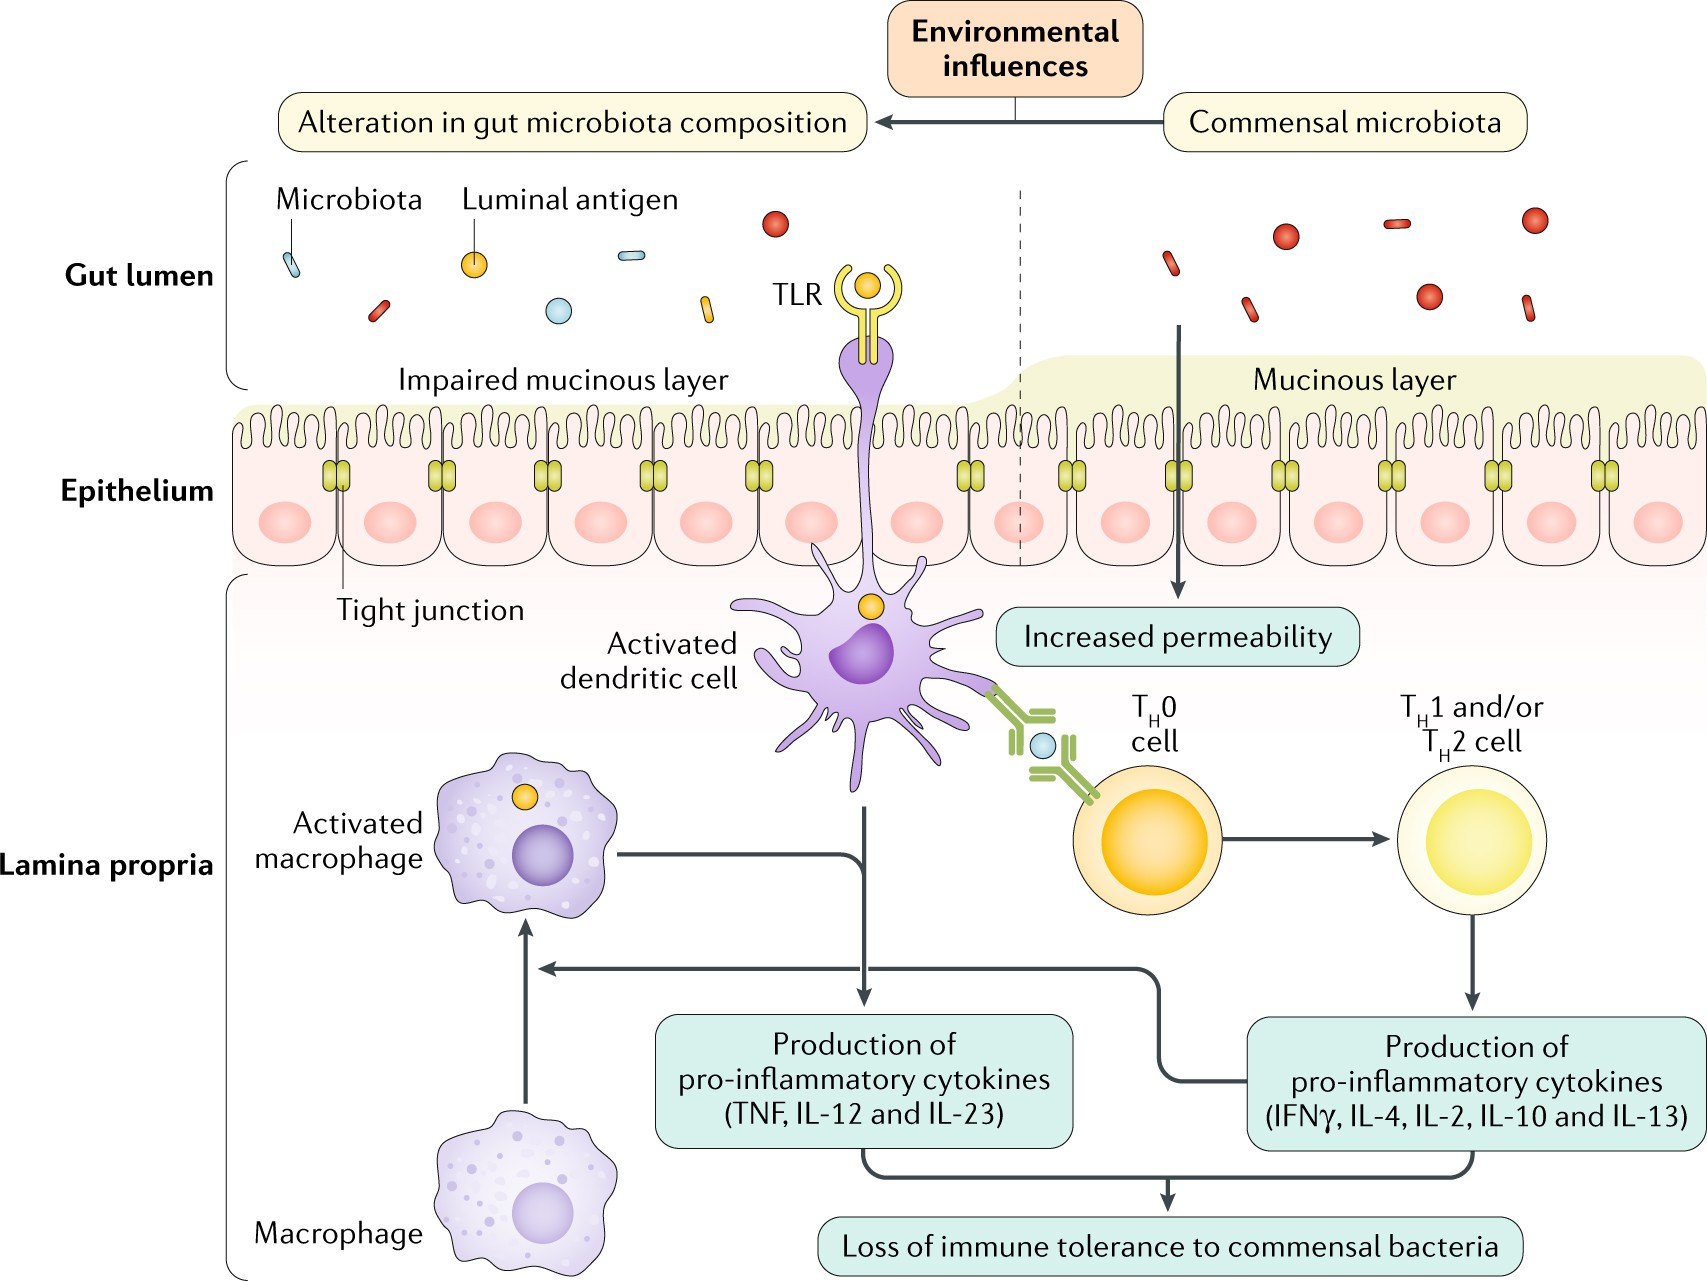 The role of diet in the aetiopathogenesis of inflammatory